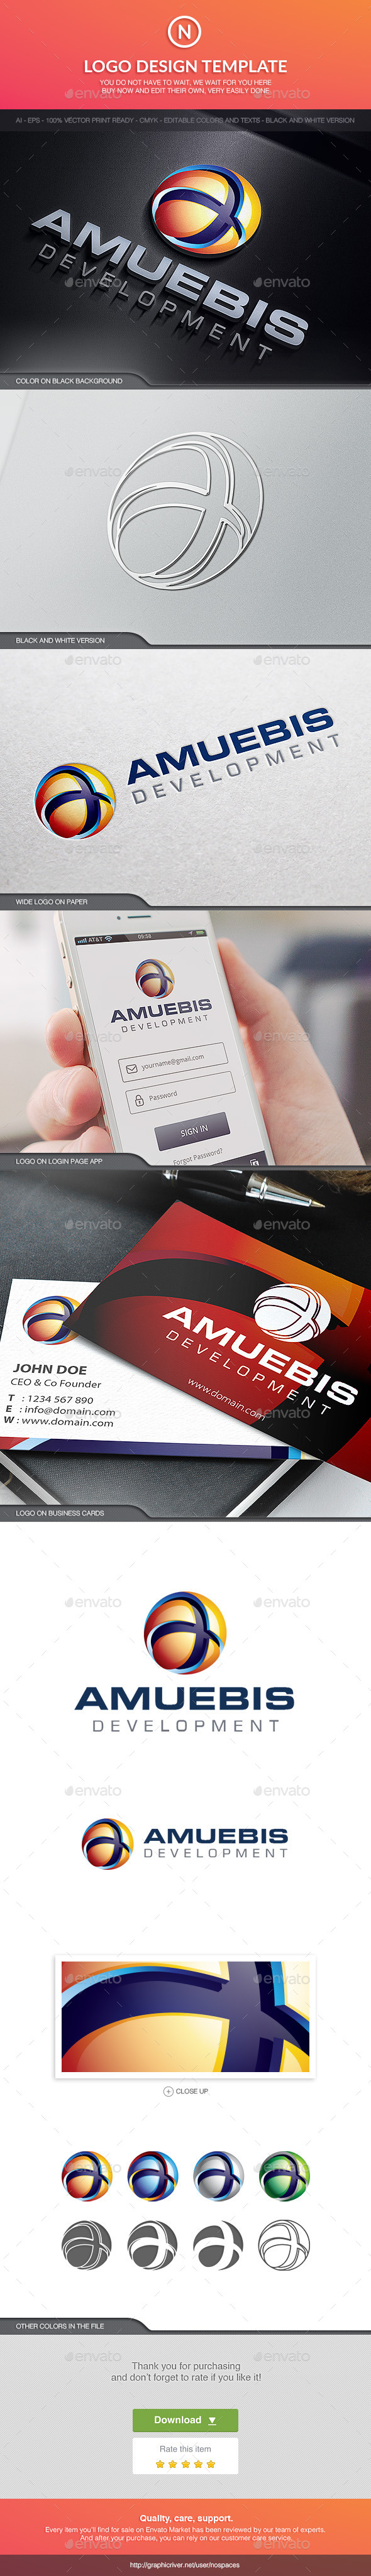 GraphicRiver Amuebis Tech Sphere 10524165